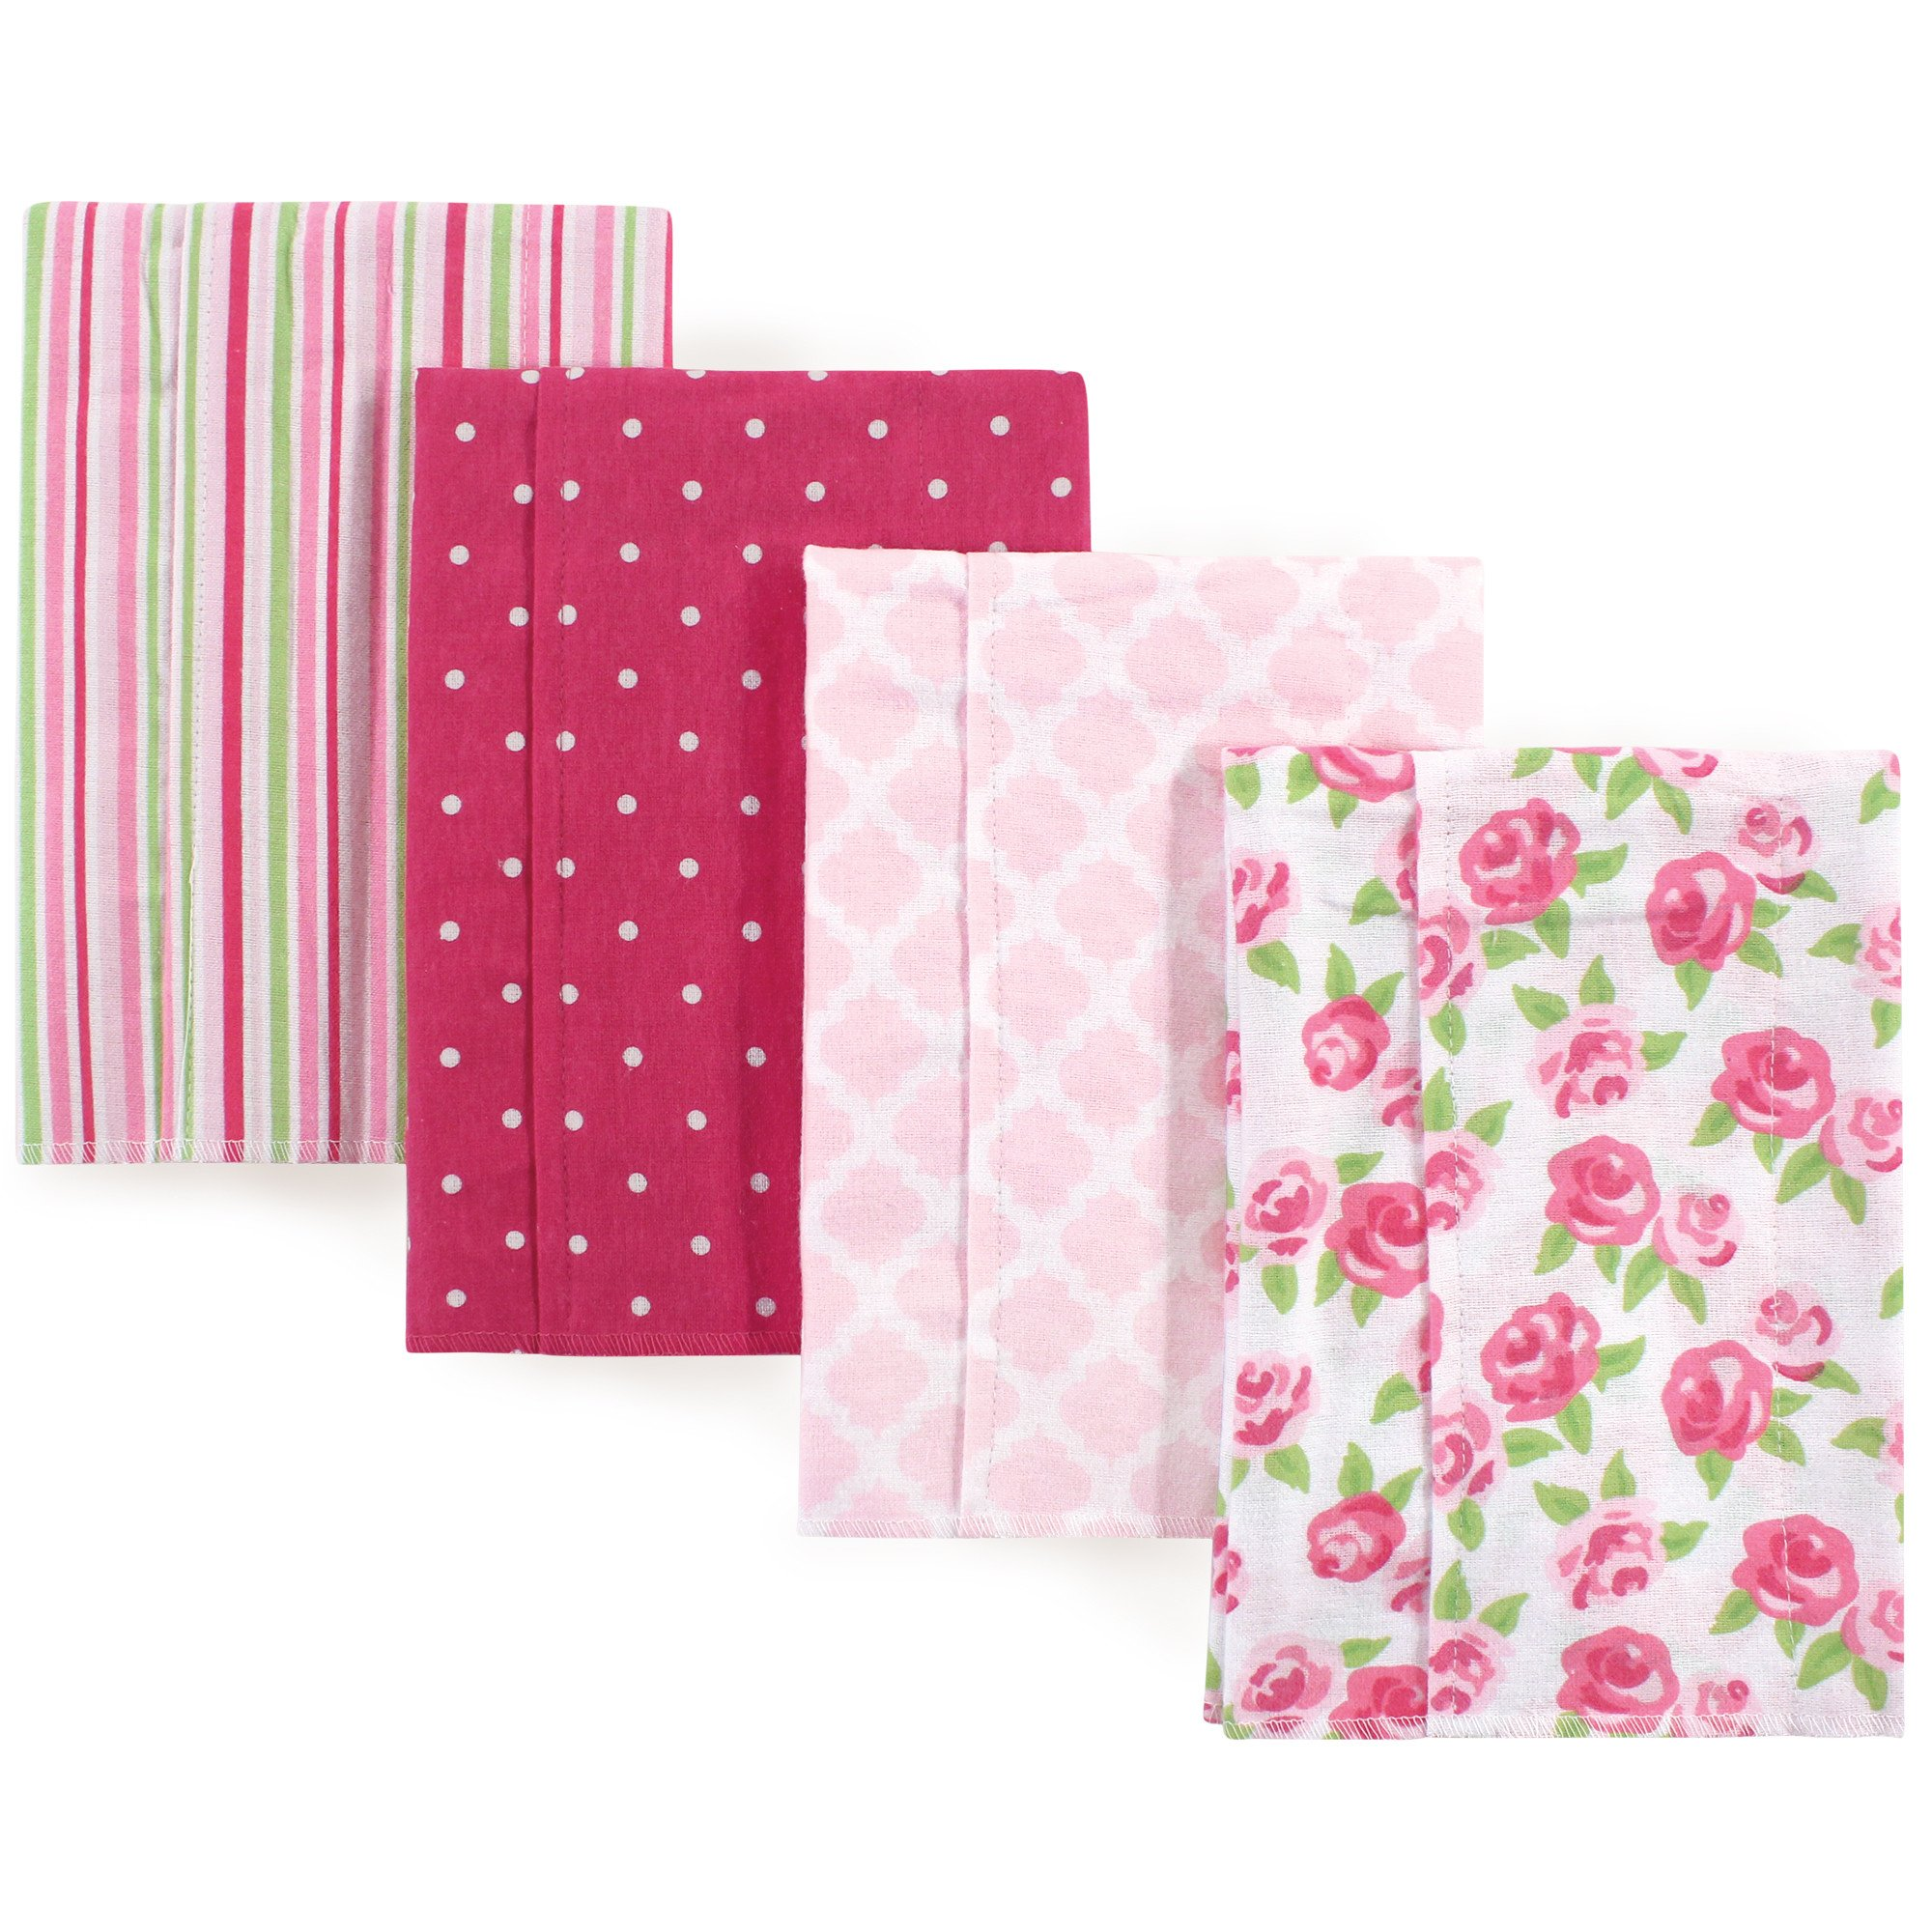 Hudson Baby Layered Flannel Burp Cloth, Rose Pack, One Size